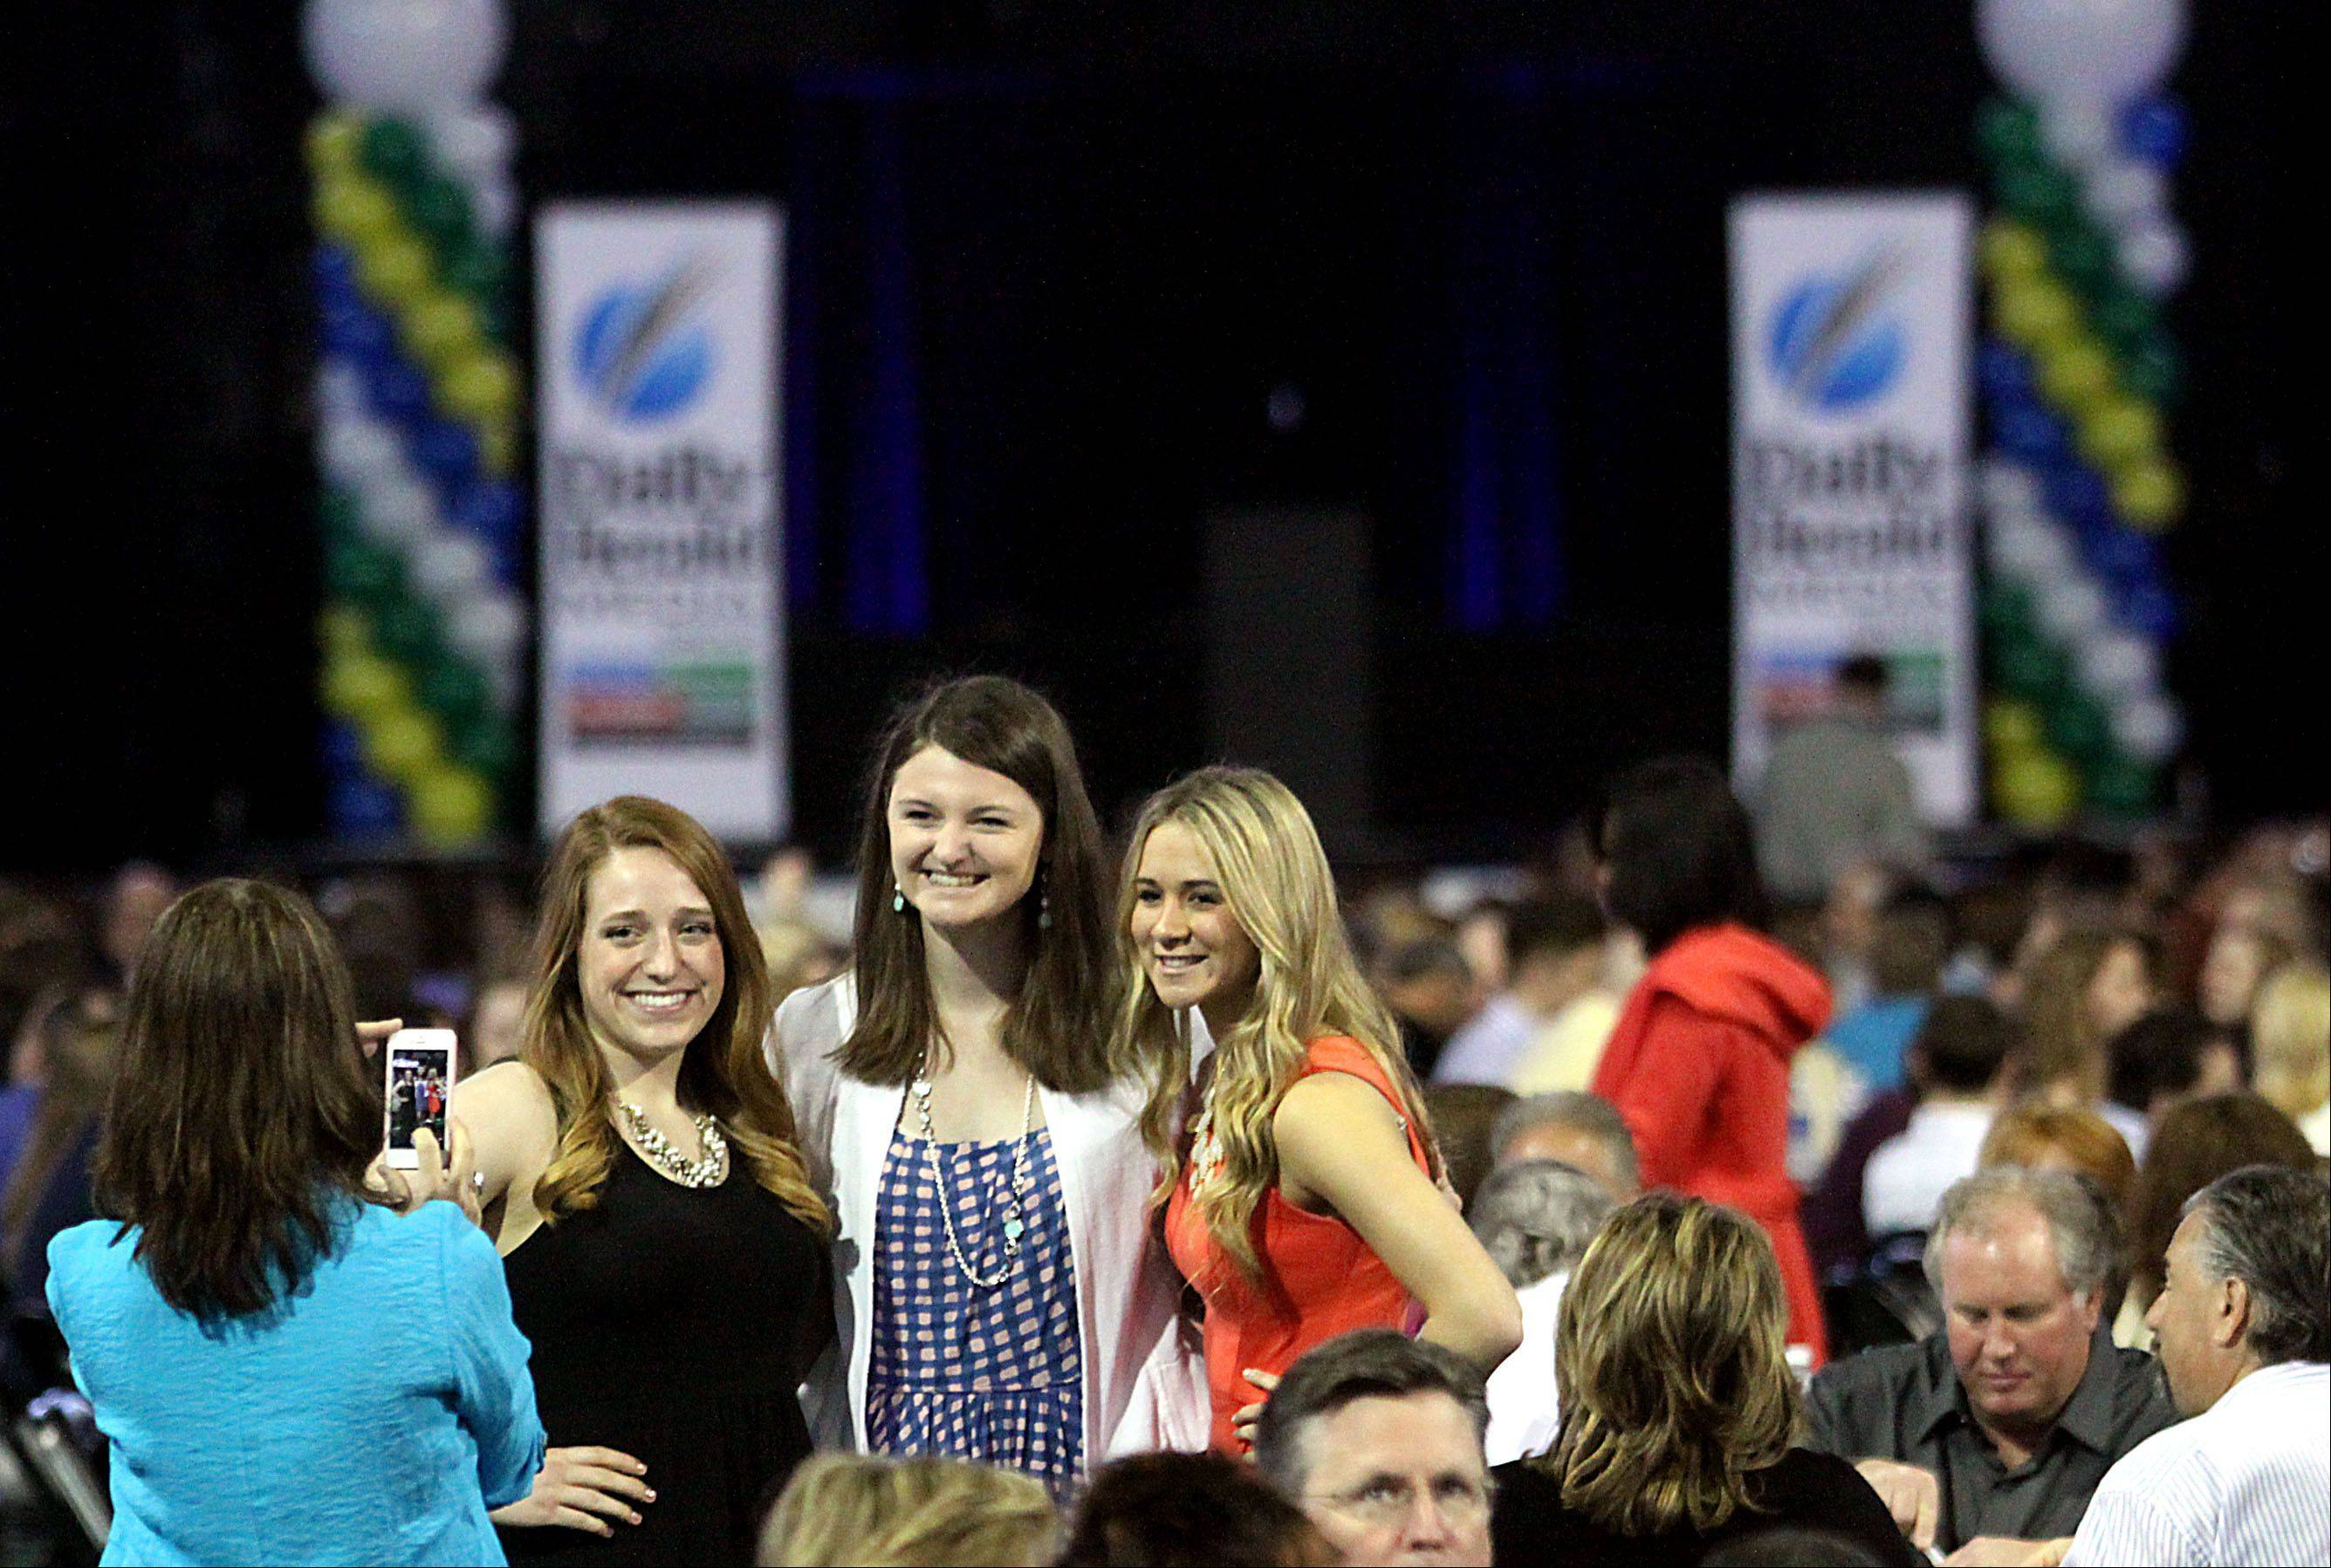 Athletes, from left, Olivia Jakubicek of Cary-Grove High School, Meri Bennett-Swanson of Vernon Hills High School, and Ashley McConnell of Fremd High School pose for pictures during the Daily Herald Prep Sports Excellence event at Sears Centre Arena in Hoffman Estates on Sunday.